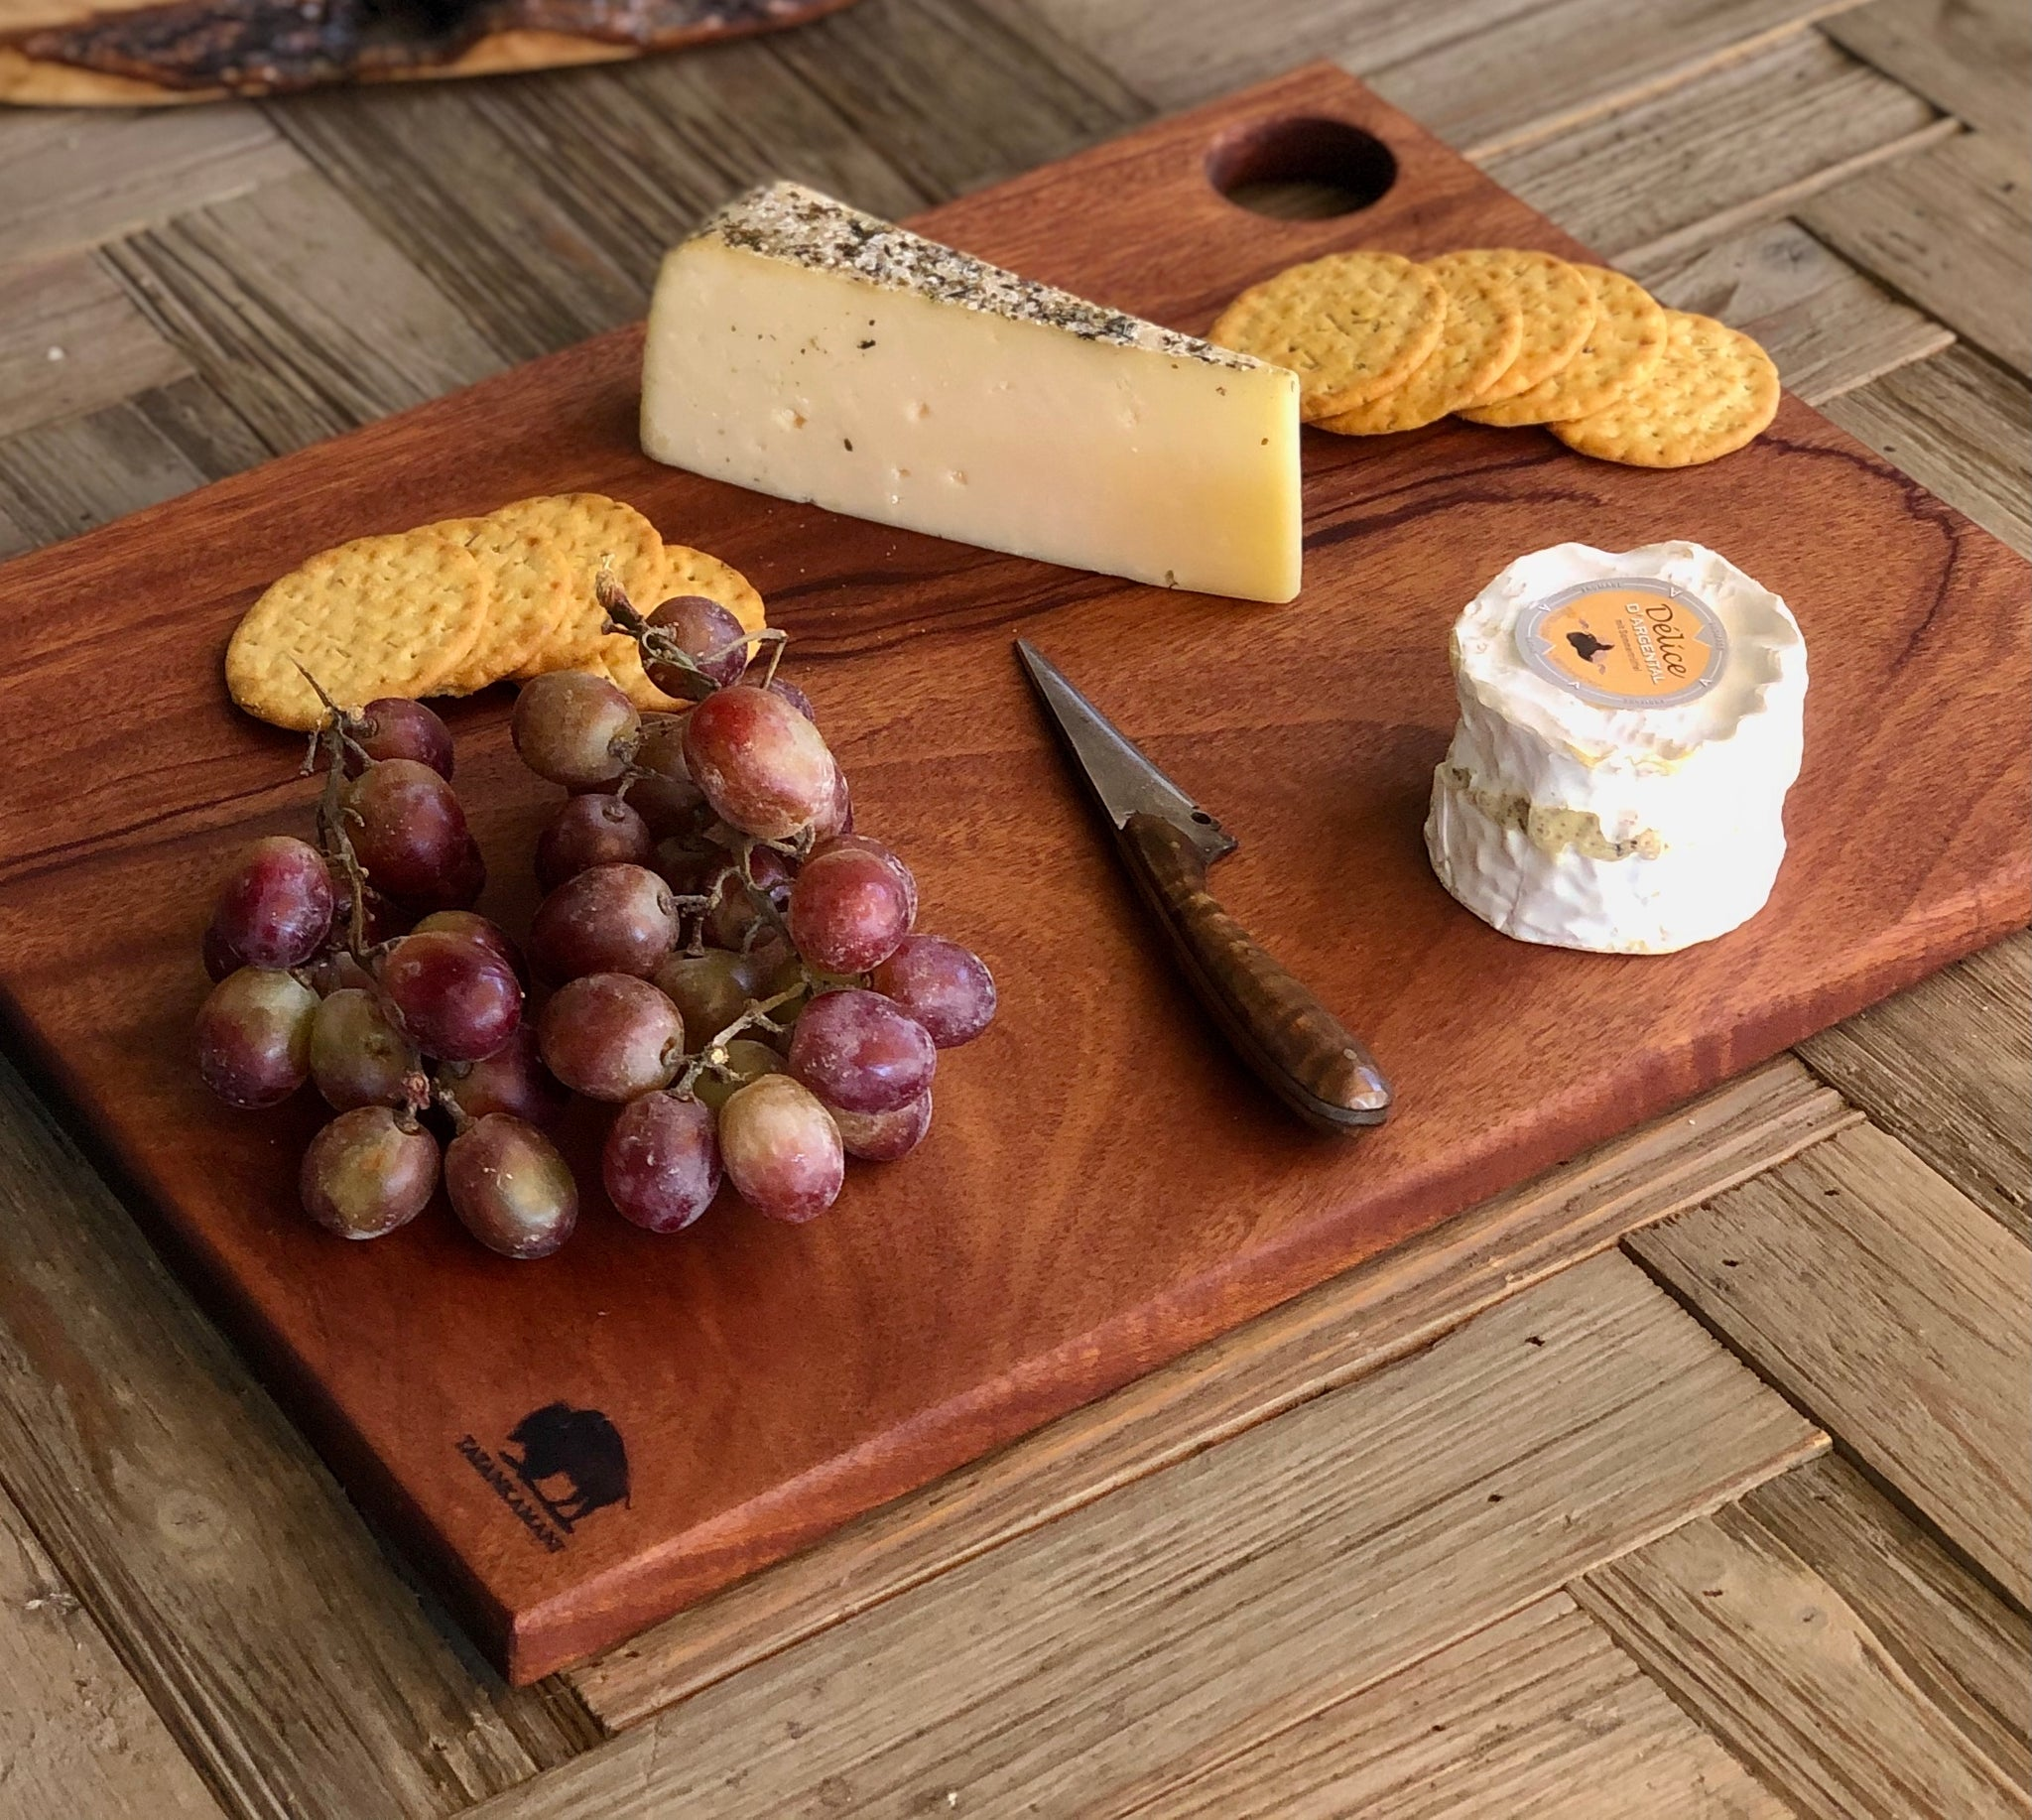 Mahogany Charcuterie and Cutting Board